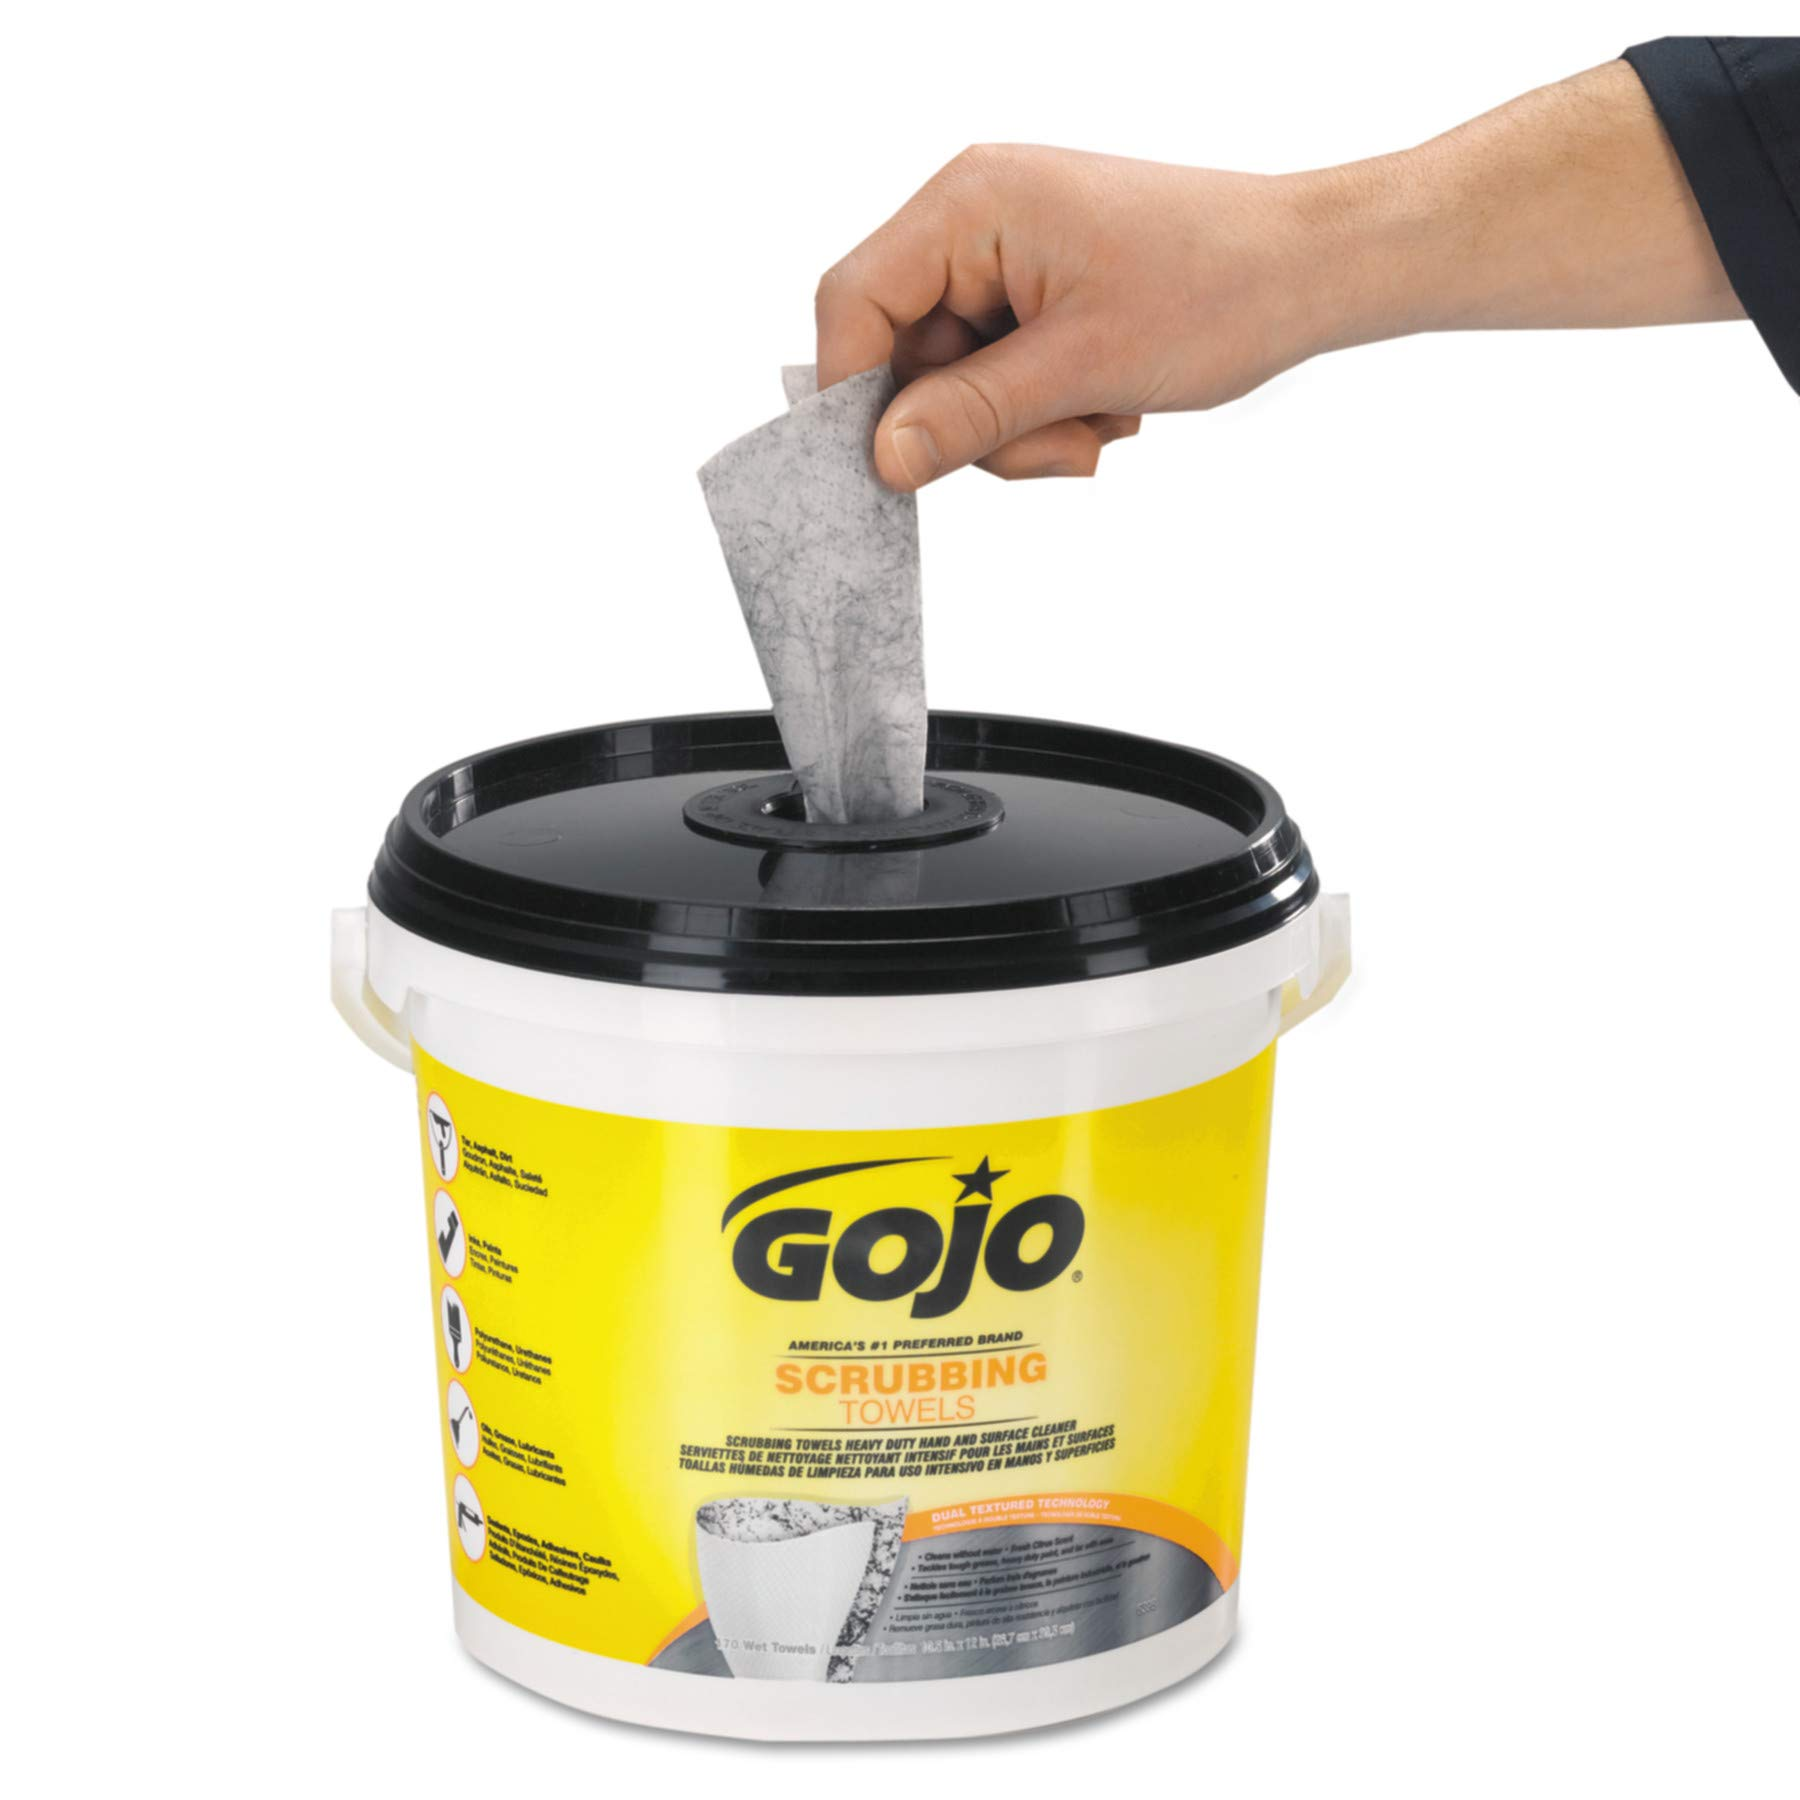 GOJO Scrubbing Towels, Fresh Citrus Scent, 170 Count Extra Large Dual Textured Wipes Bucket (Pack of 2) – 6398-02 by Gojo (Image #3)